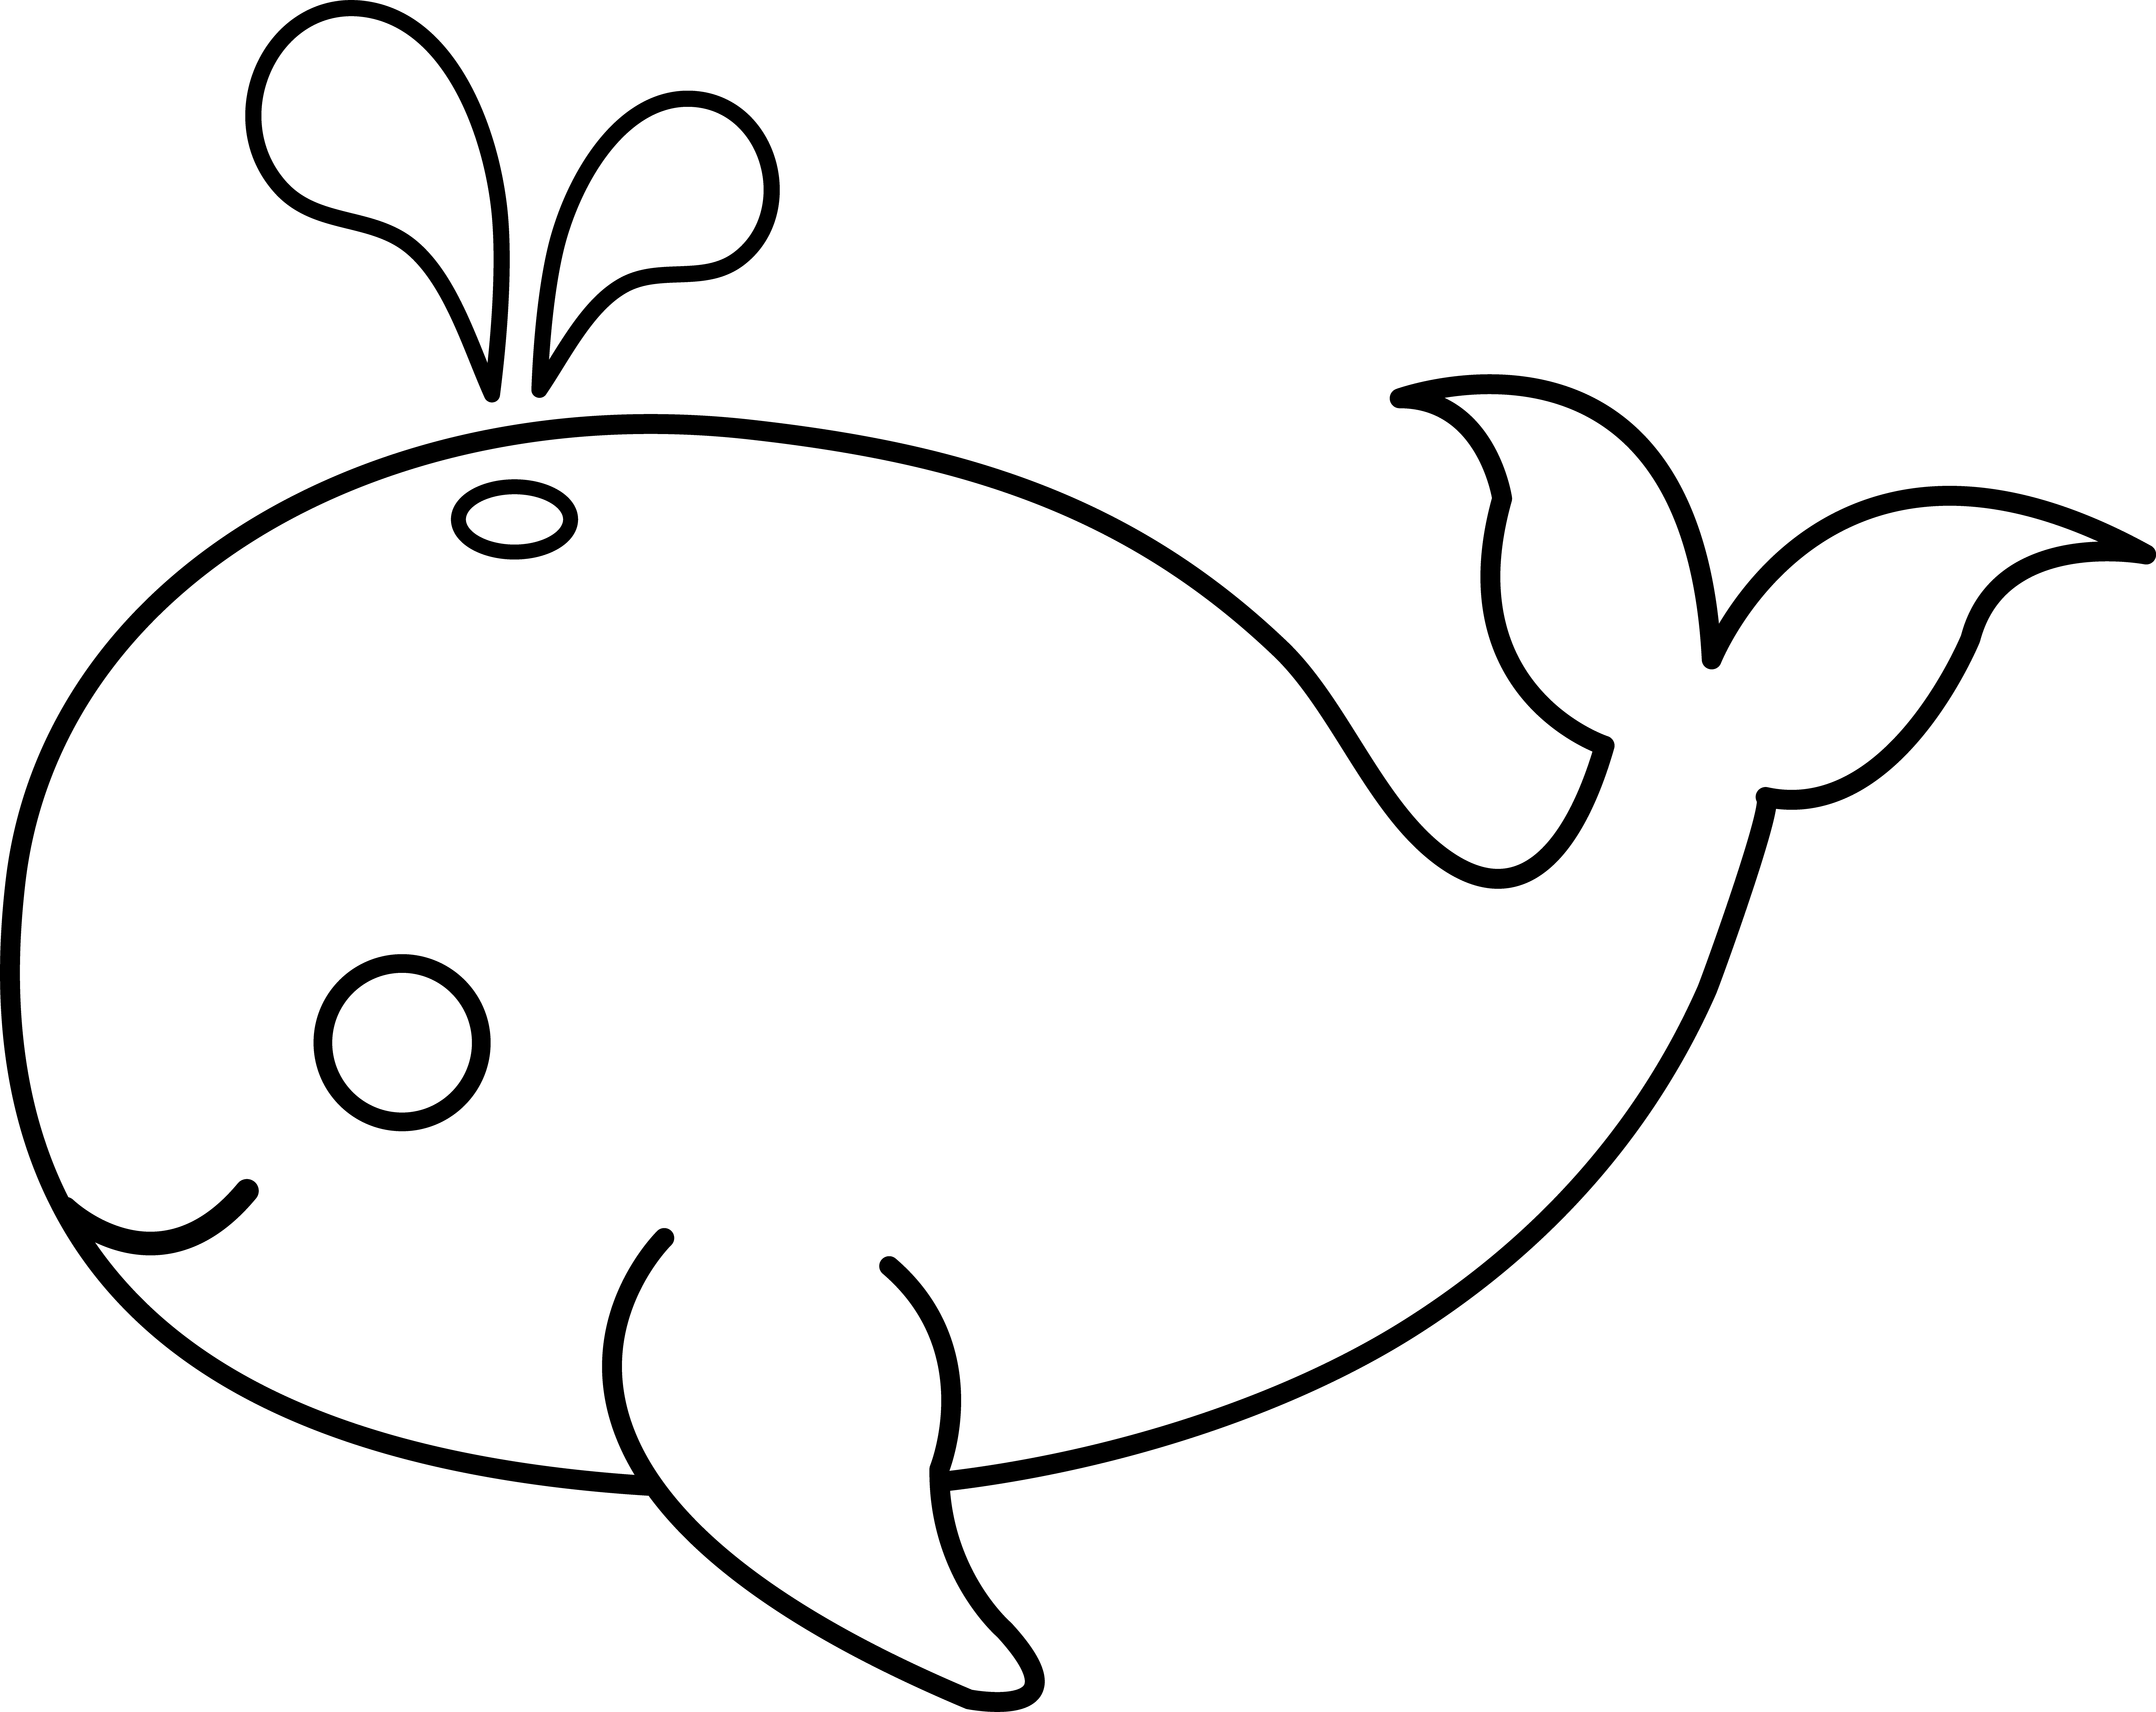 graphic transparent download Whale clipart black and white. Fish outline valeriastoica unsurpassed